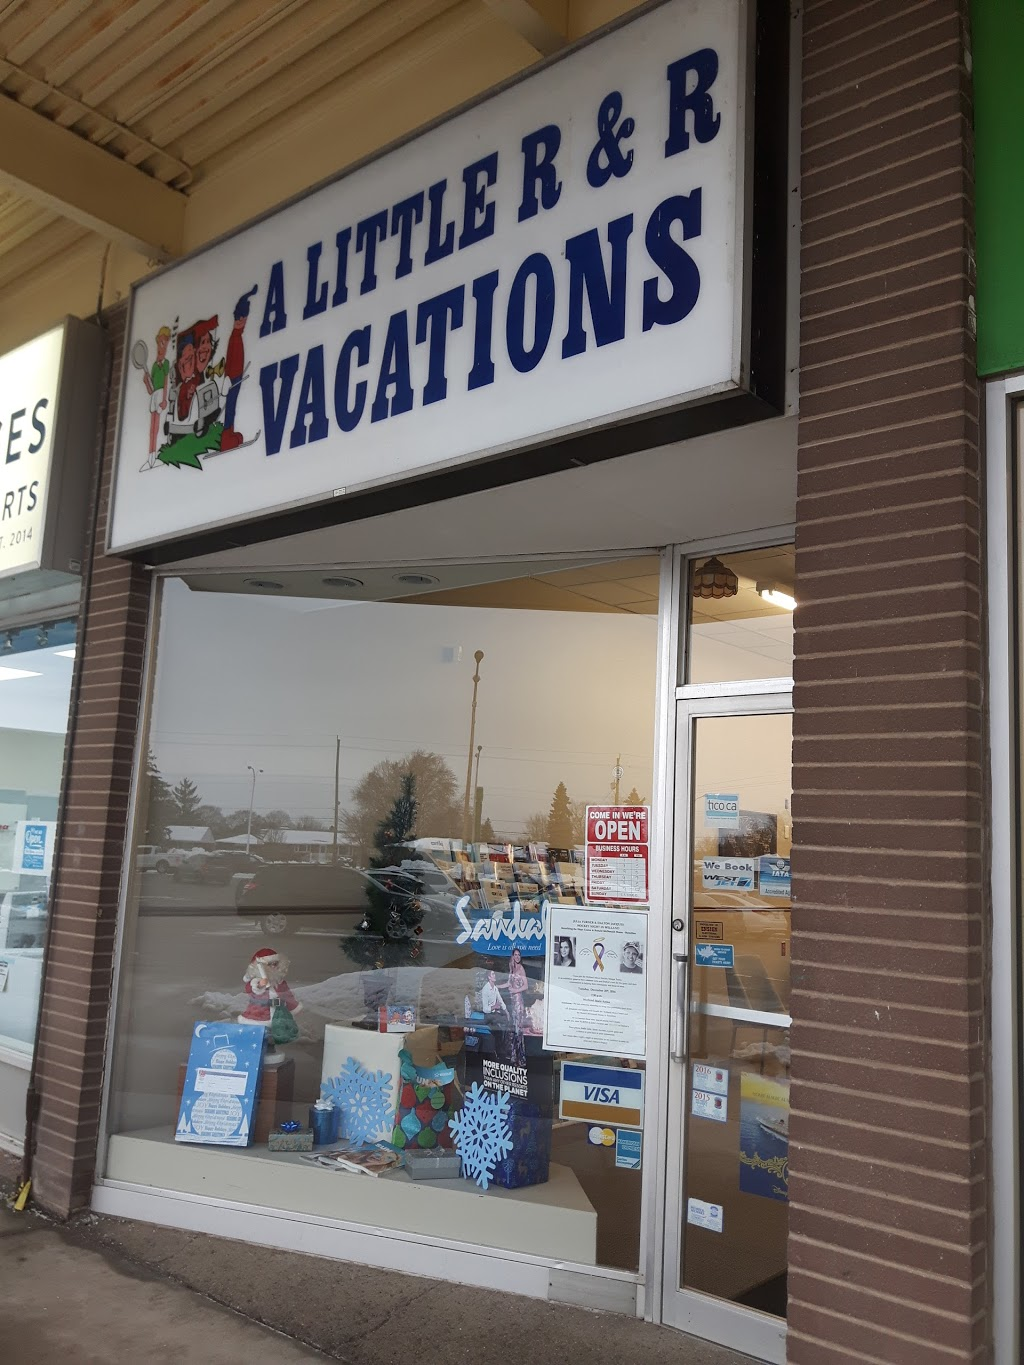 A Little R & R Vacations | travel agency | 200 Fitch St, Welland, ON L3C 4V9, Canada | 9057341311 OR +1 905-734-1311